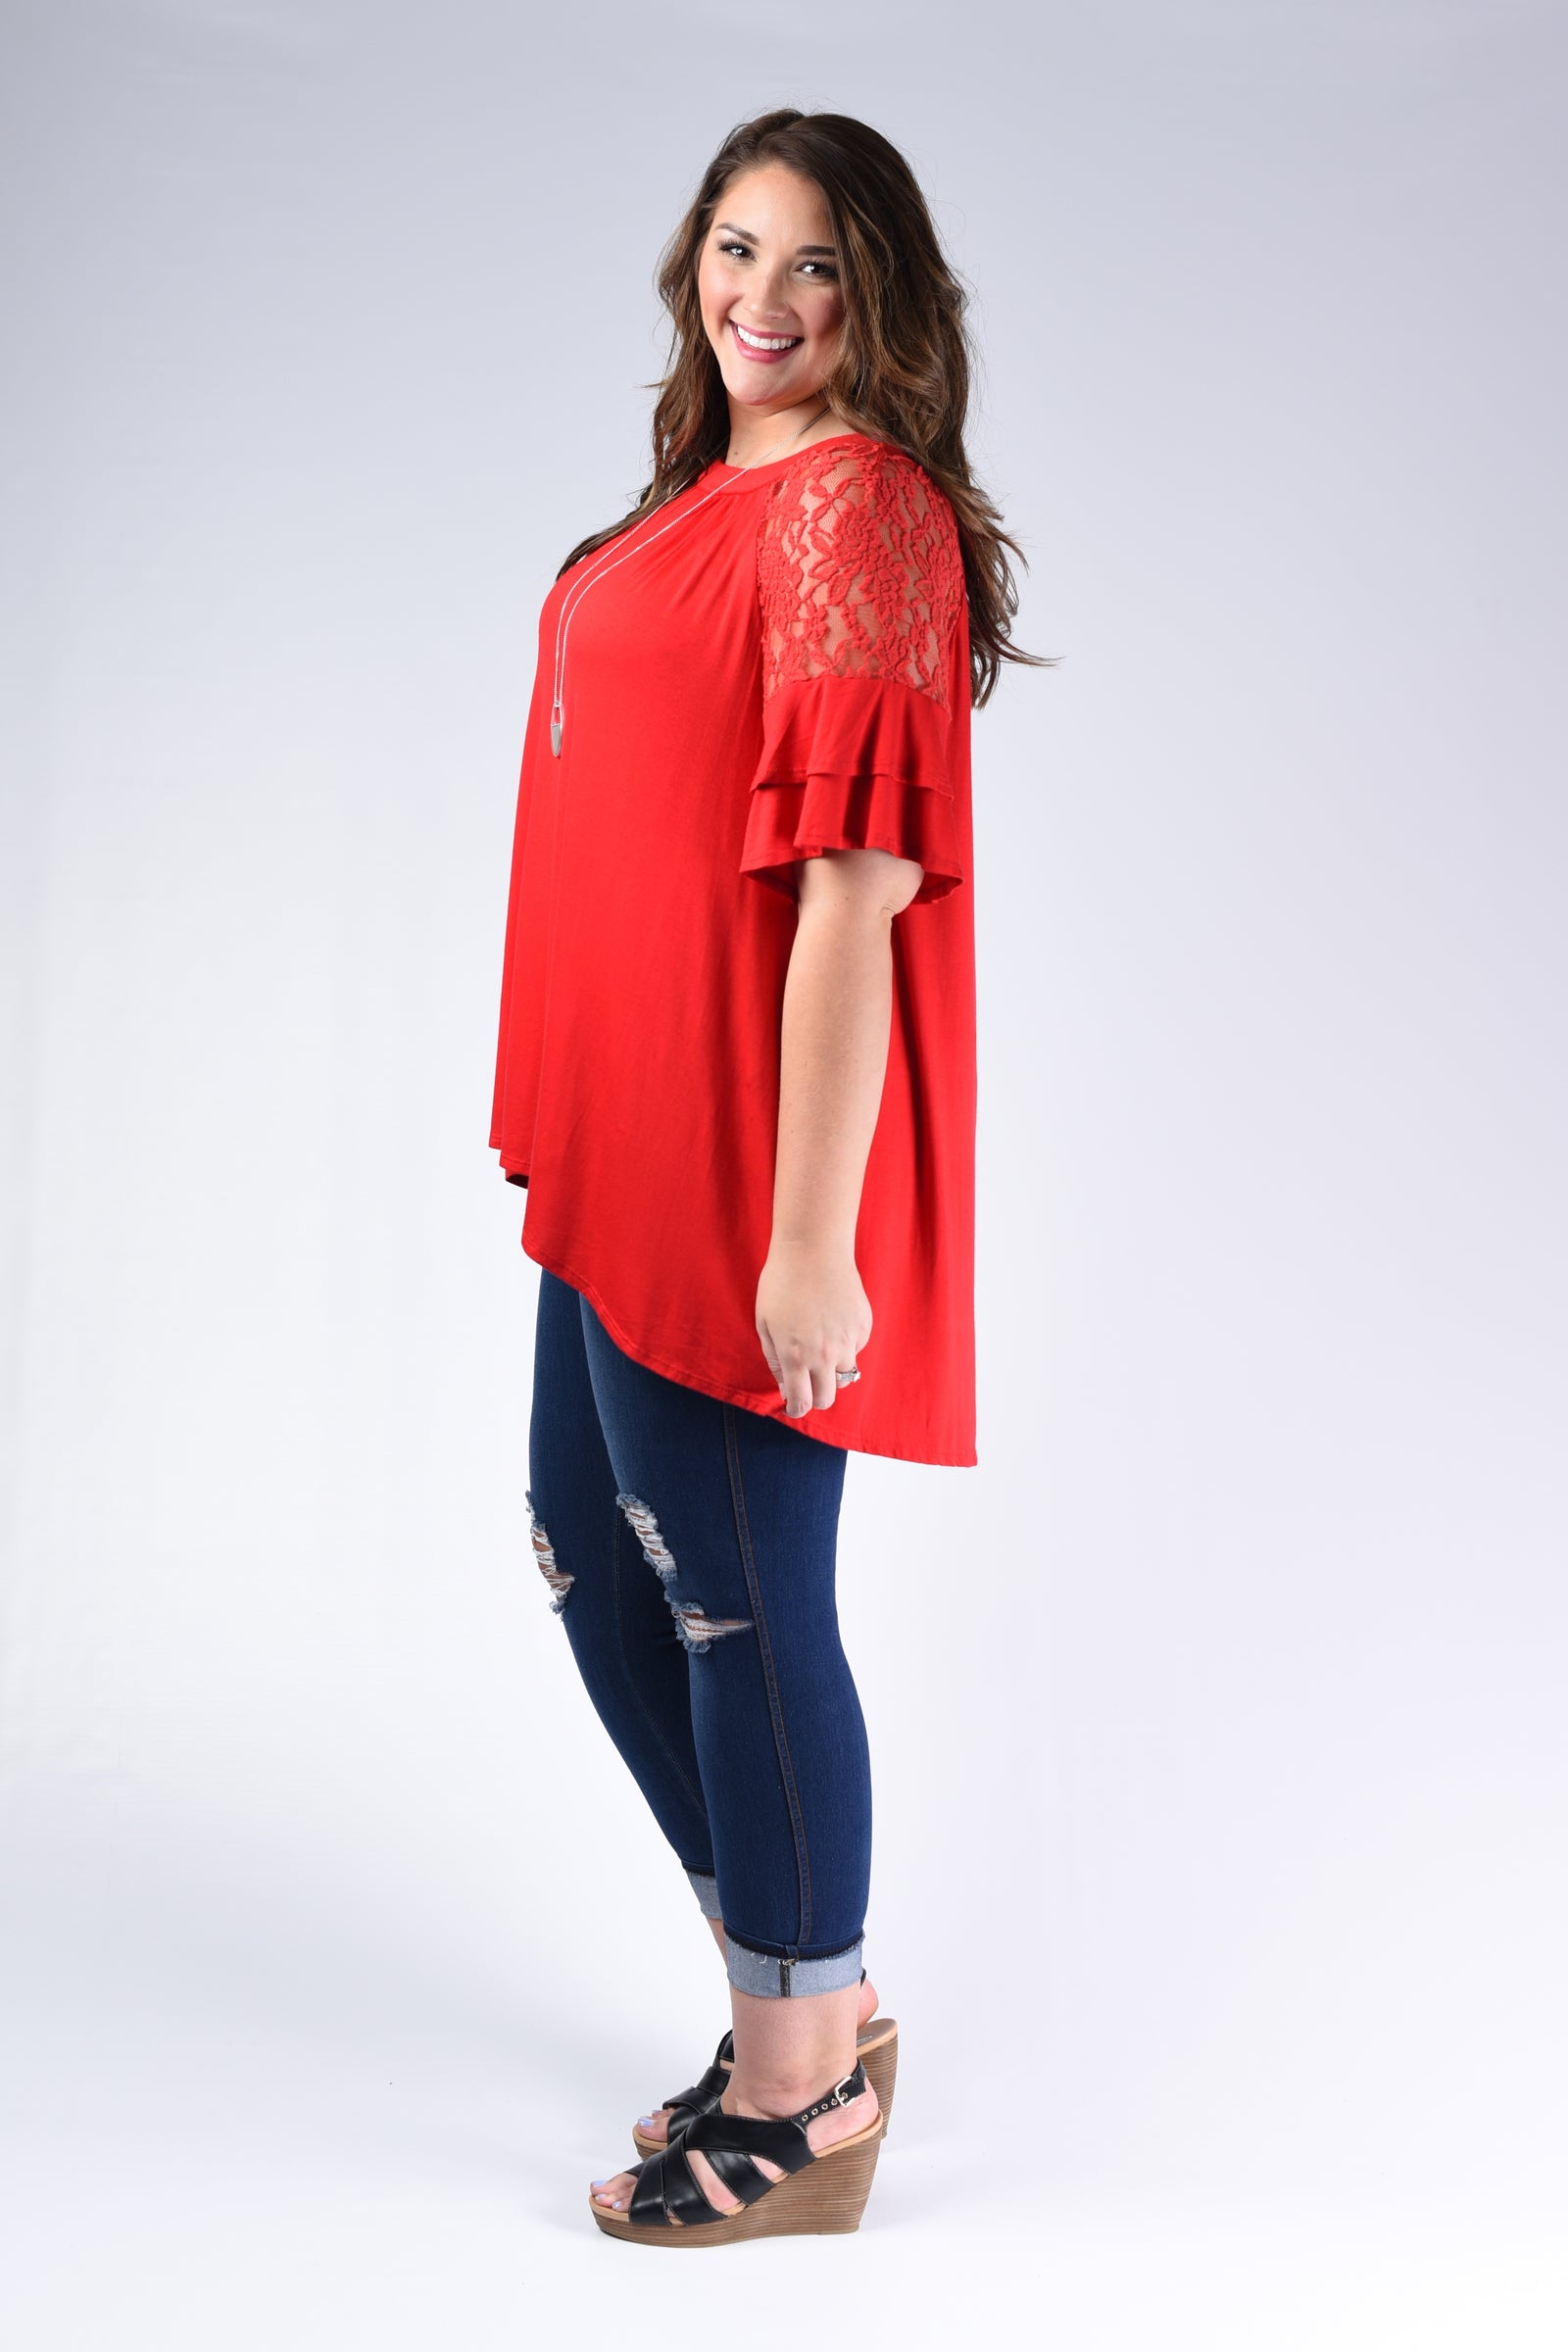 Red Lace Shoulder Top - www.mycurvystore.com - Curvy Boutique - Plus Size